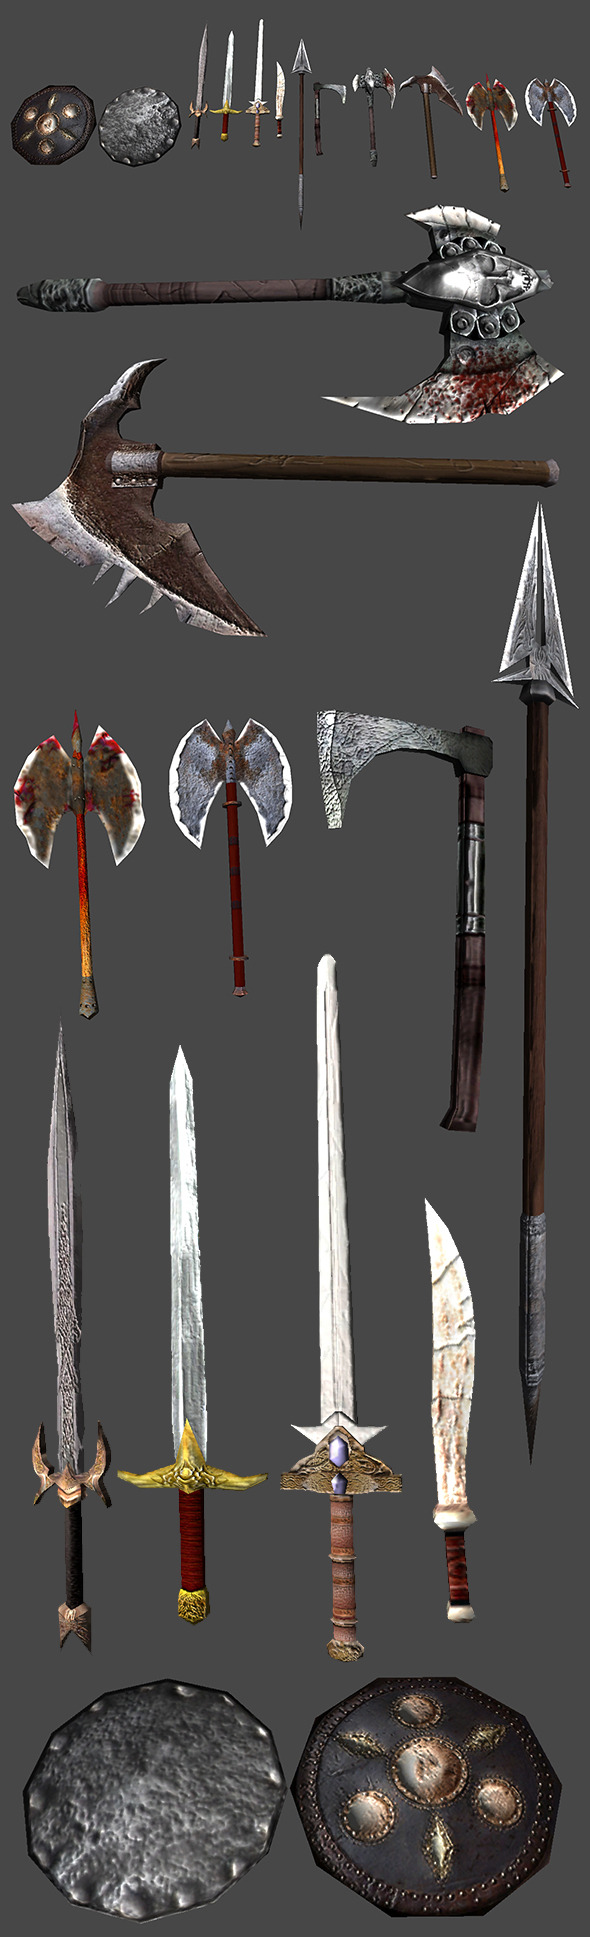 Cold Weapons LowPoly Models Pack - 3DOcean Item for Sale